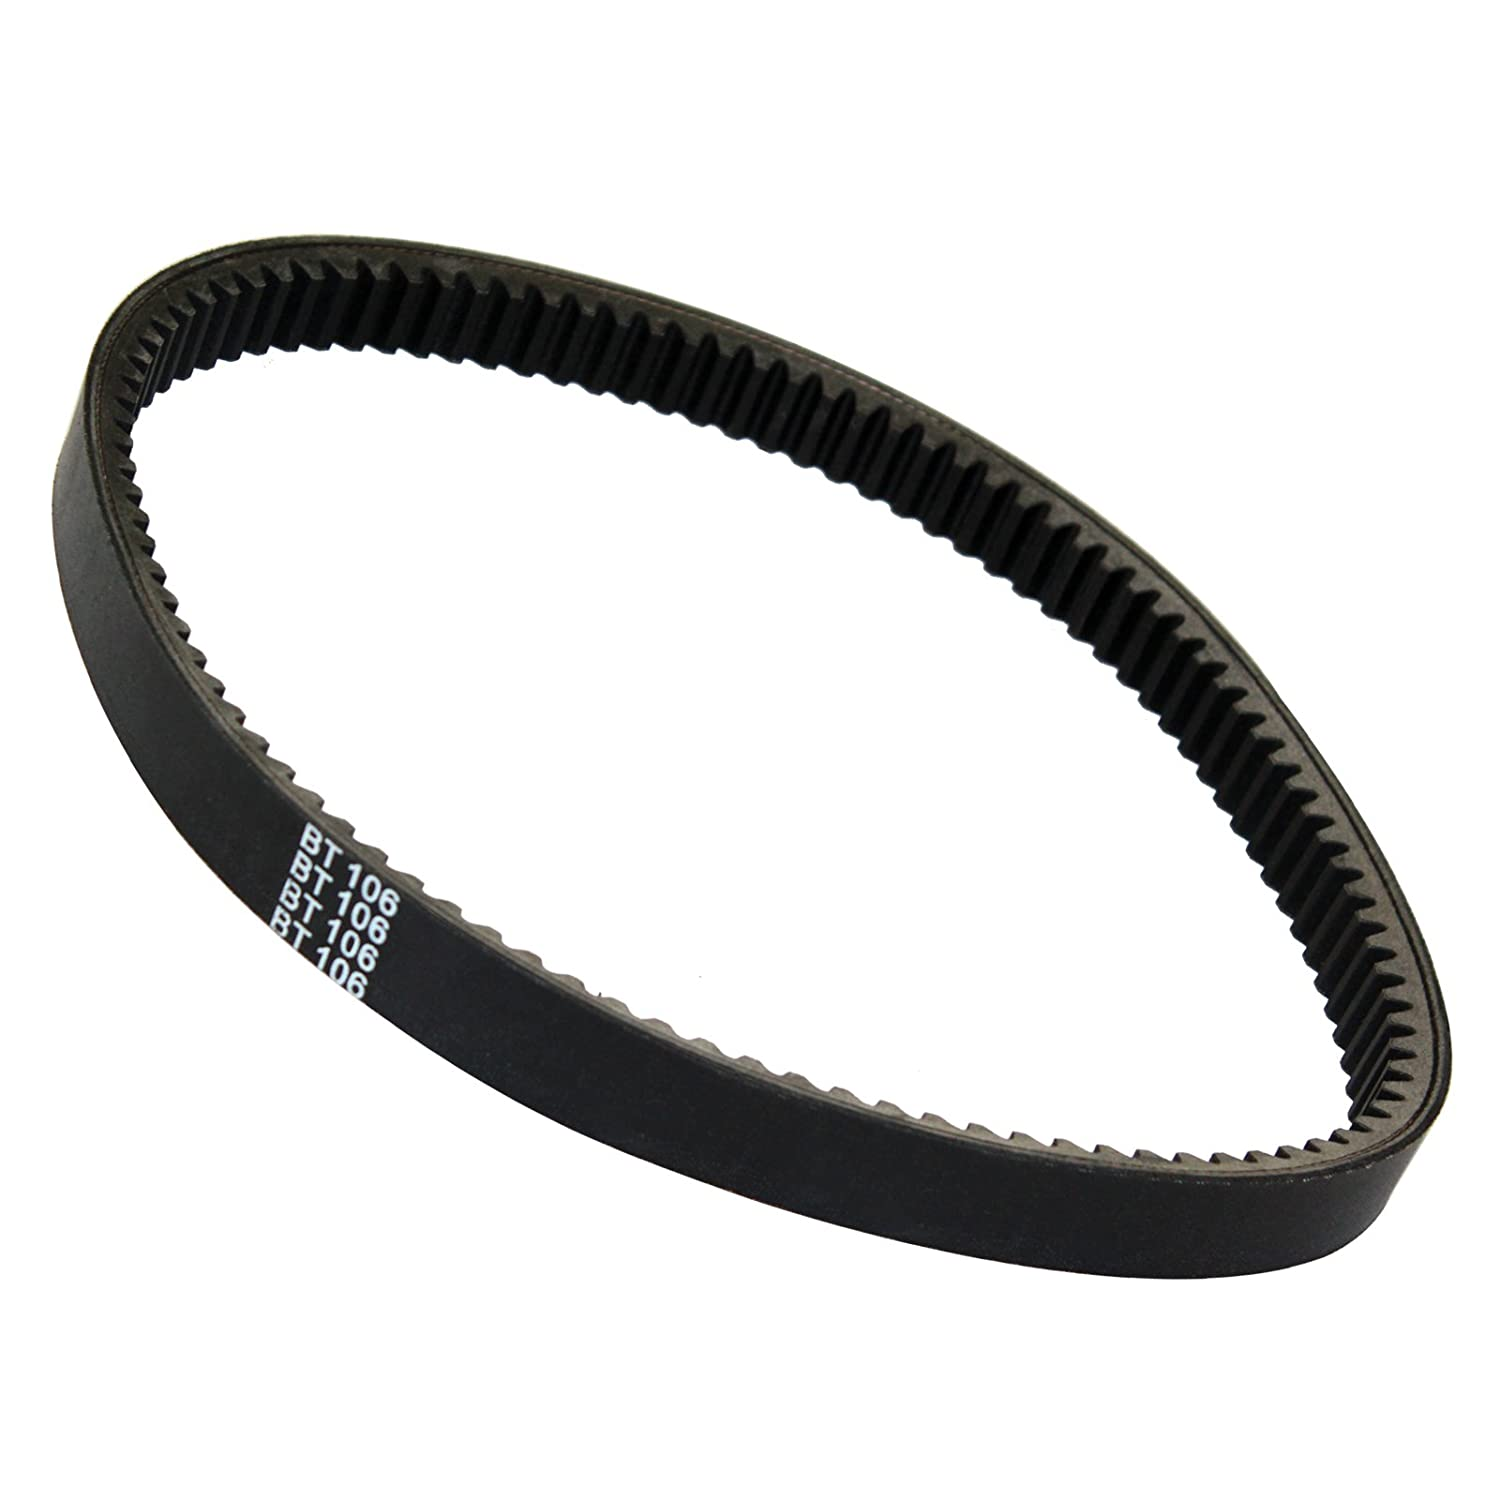 CALTRIC DRIVE BELT Fits POLARIS 3211069